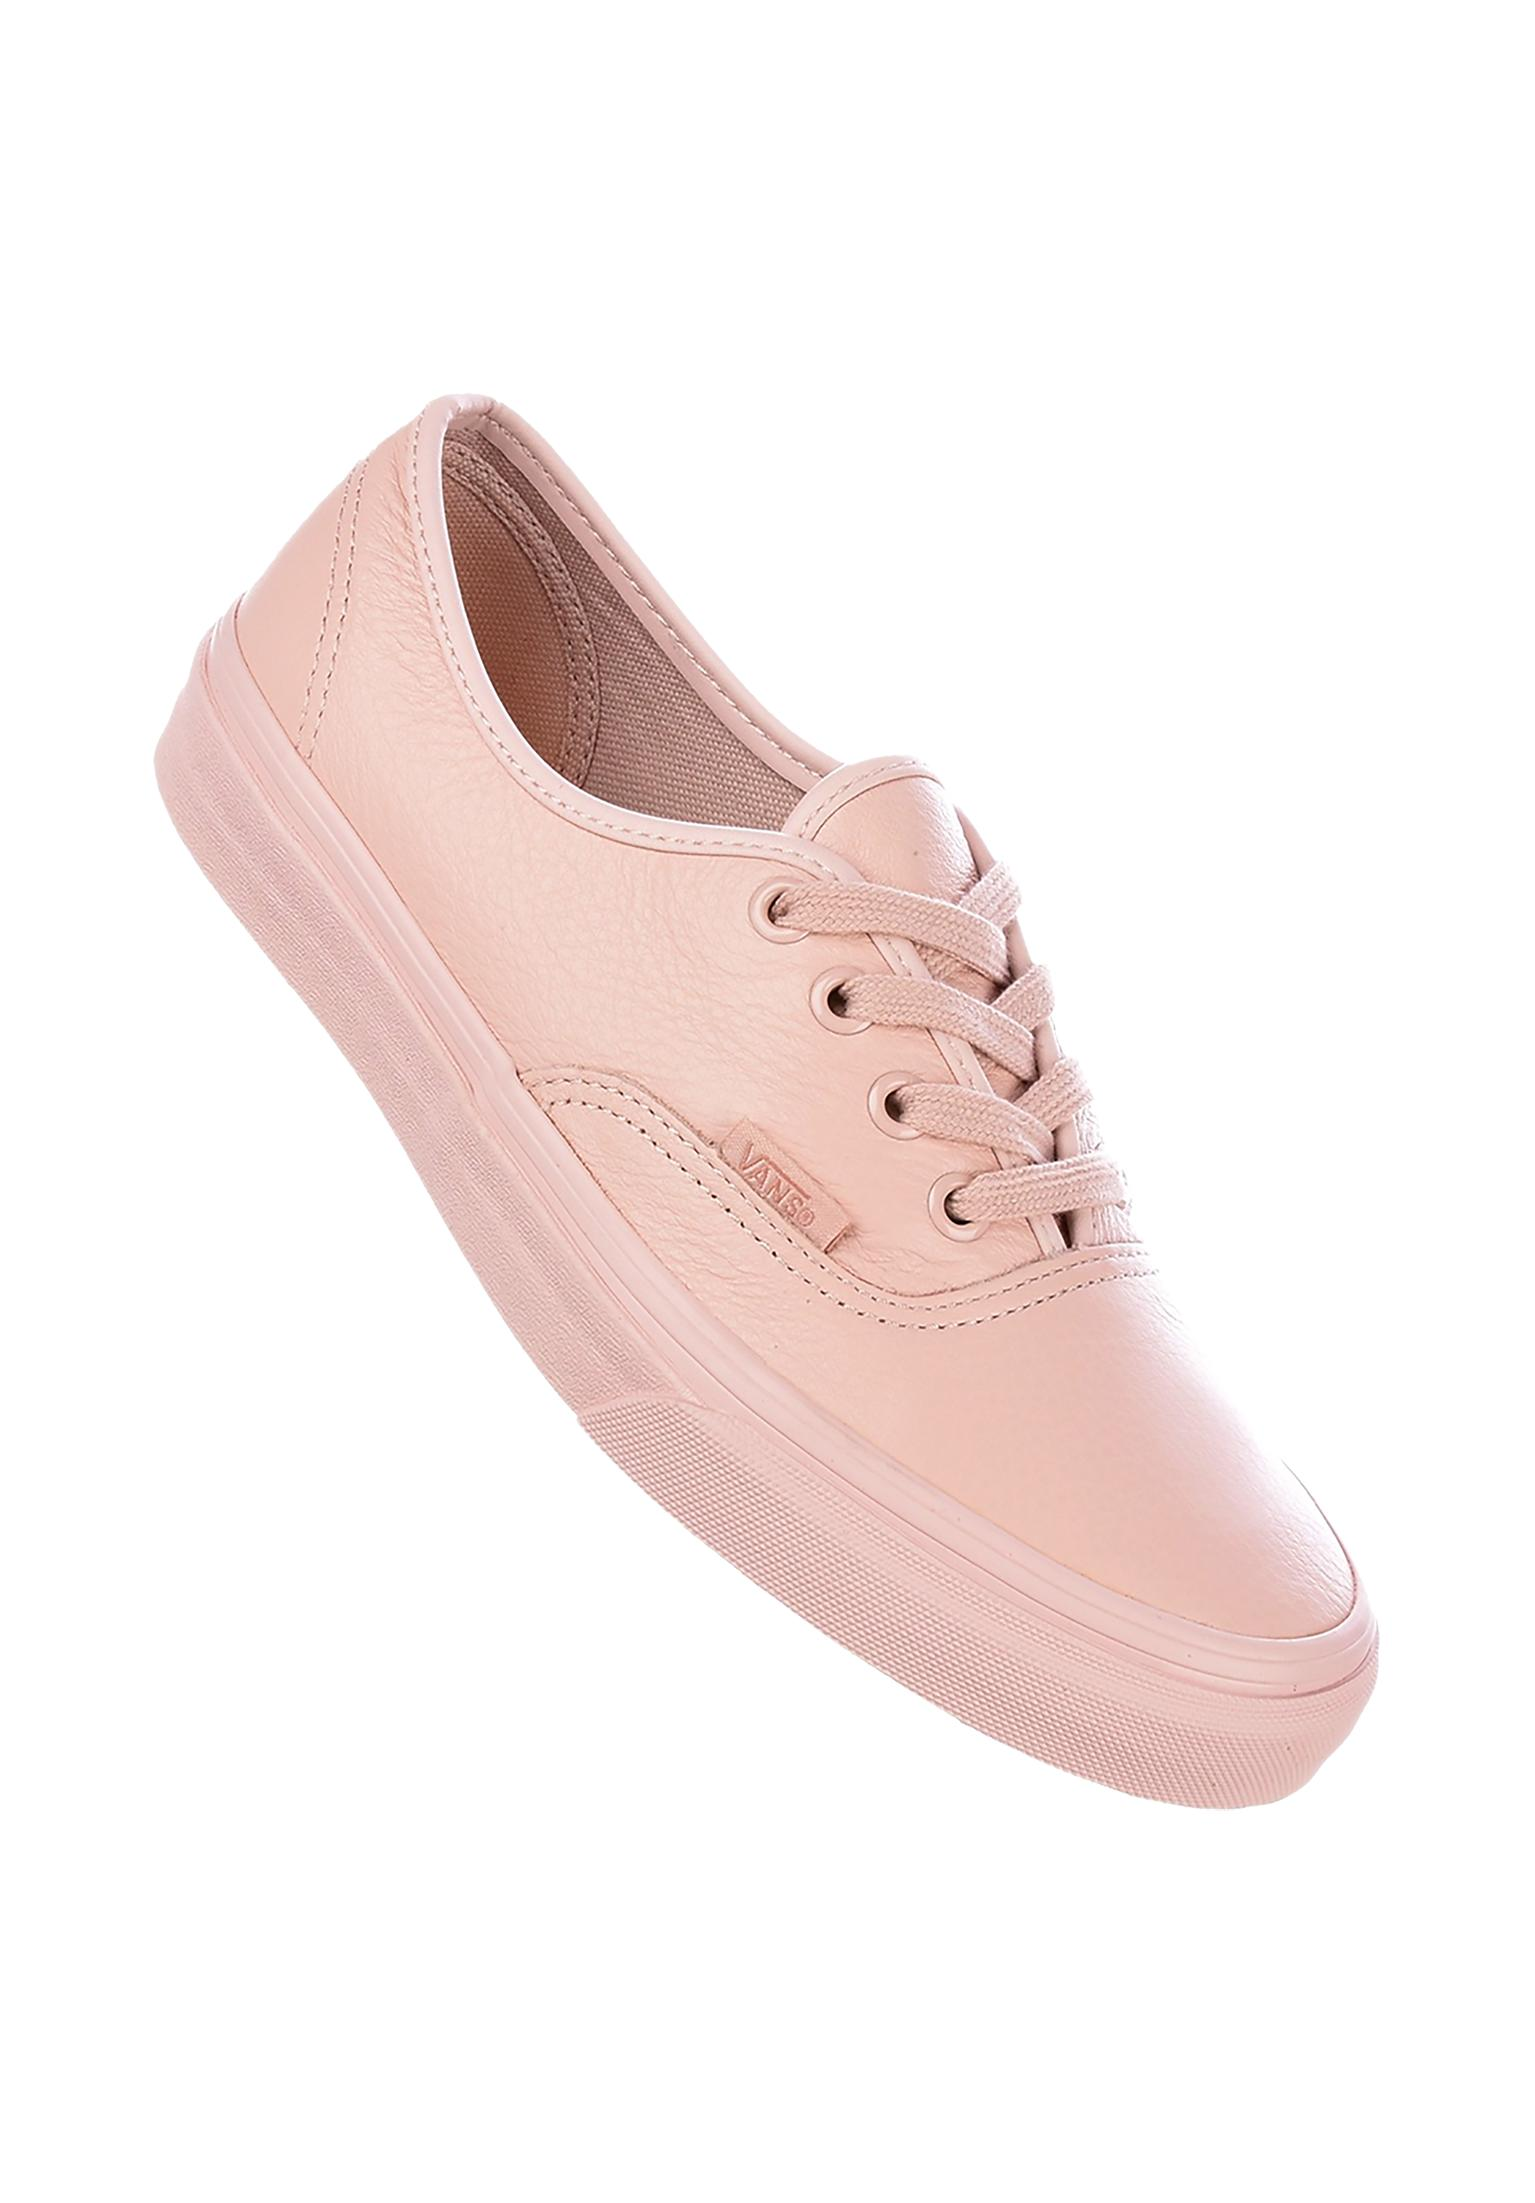 042b1cffe48b4b Authentic Classic Vans All Shoes in mono-sepiarose for Women